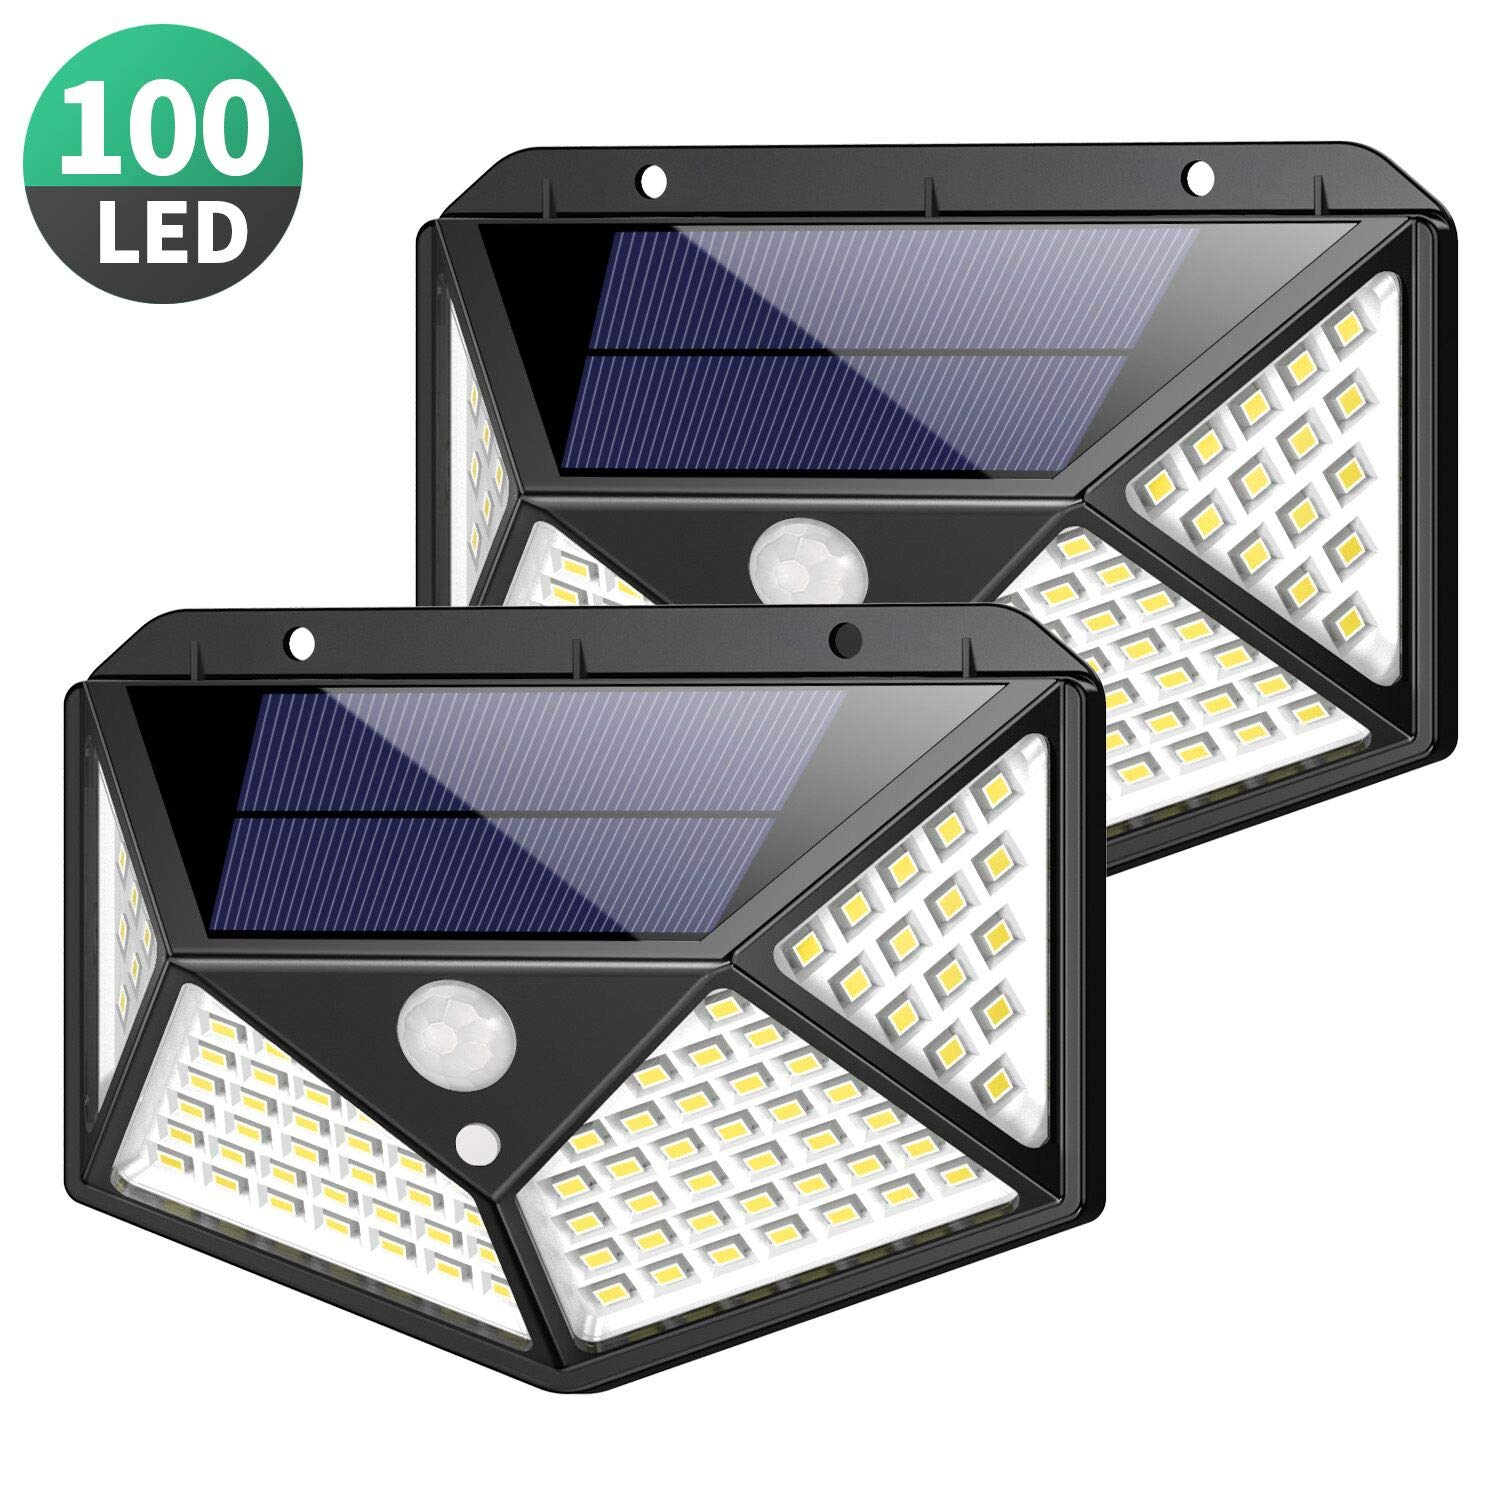 Solar Lights Outdoor 100 Led, Feob Upgraded Super Bright Motion Sensor Light with 270° Wide Angle, Wireless Waterproof Security Wall Lights for Front Door, Yard, Garage, Deck, Pathway, Porch(2 Pack) by Feob